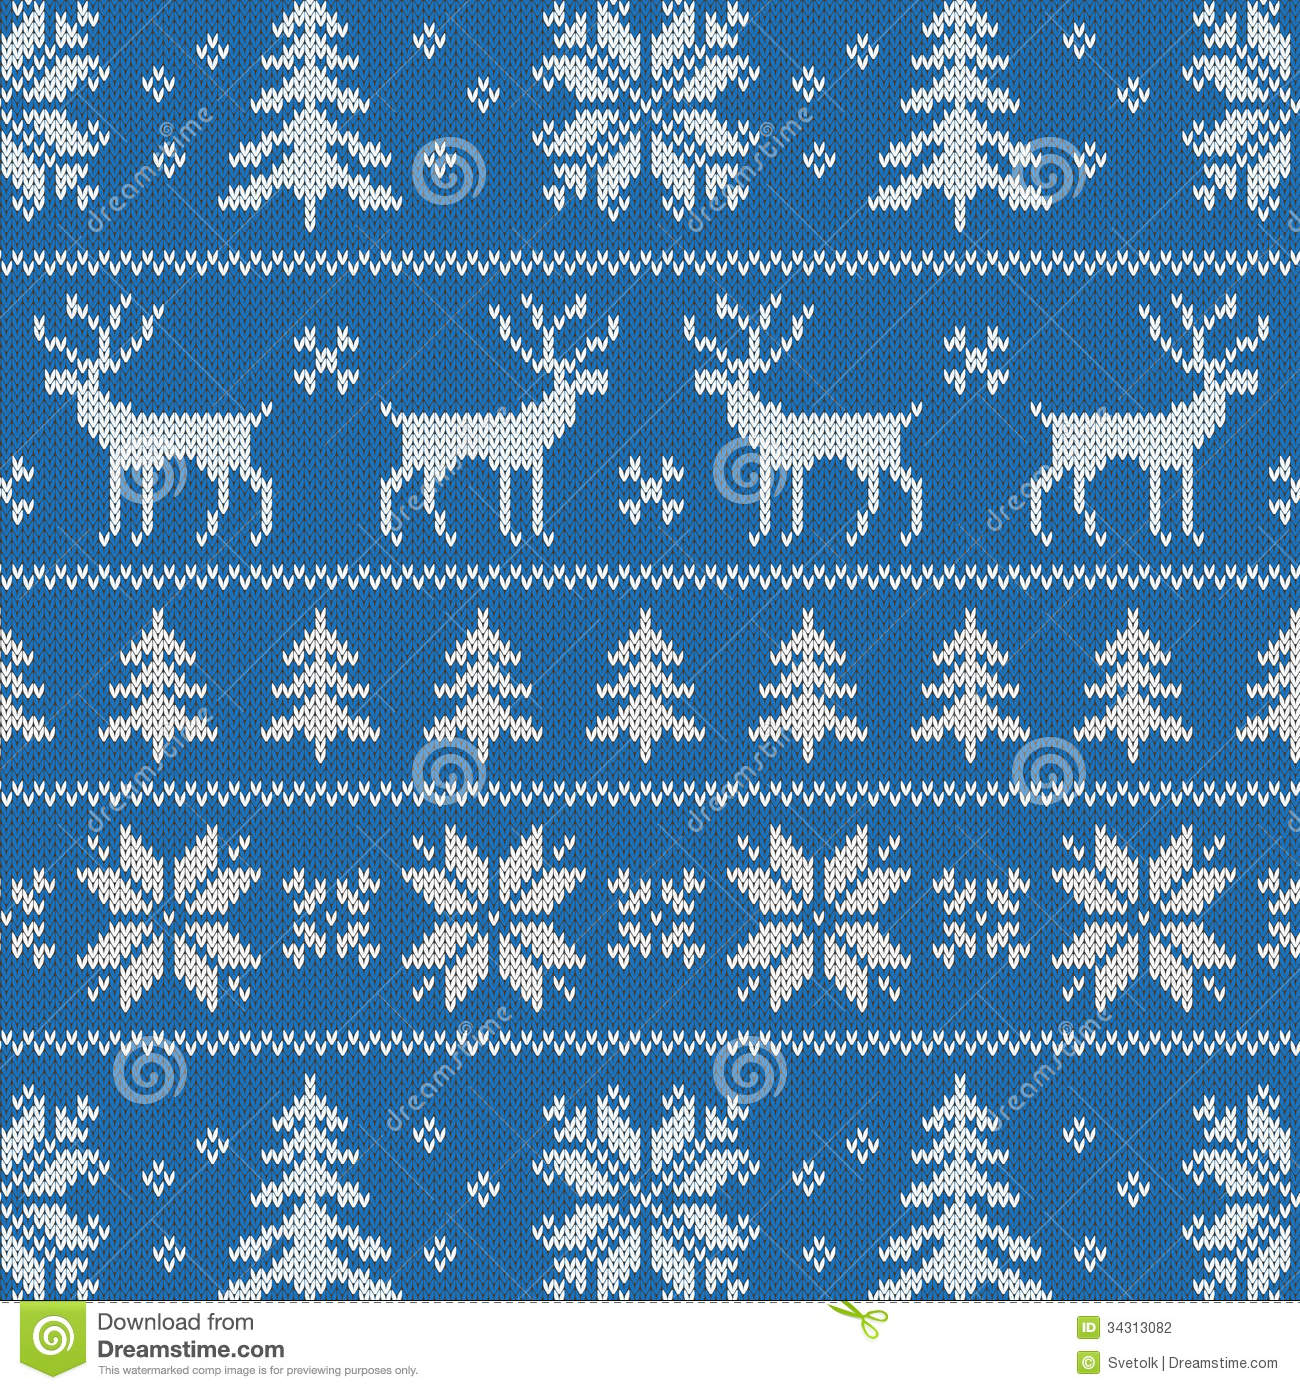 ... pattern with winter sweater design - deer, snowflake and christmas